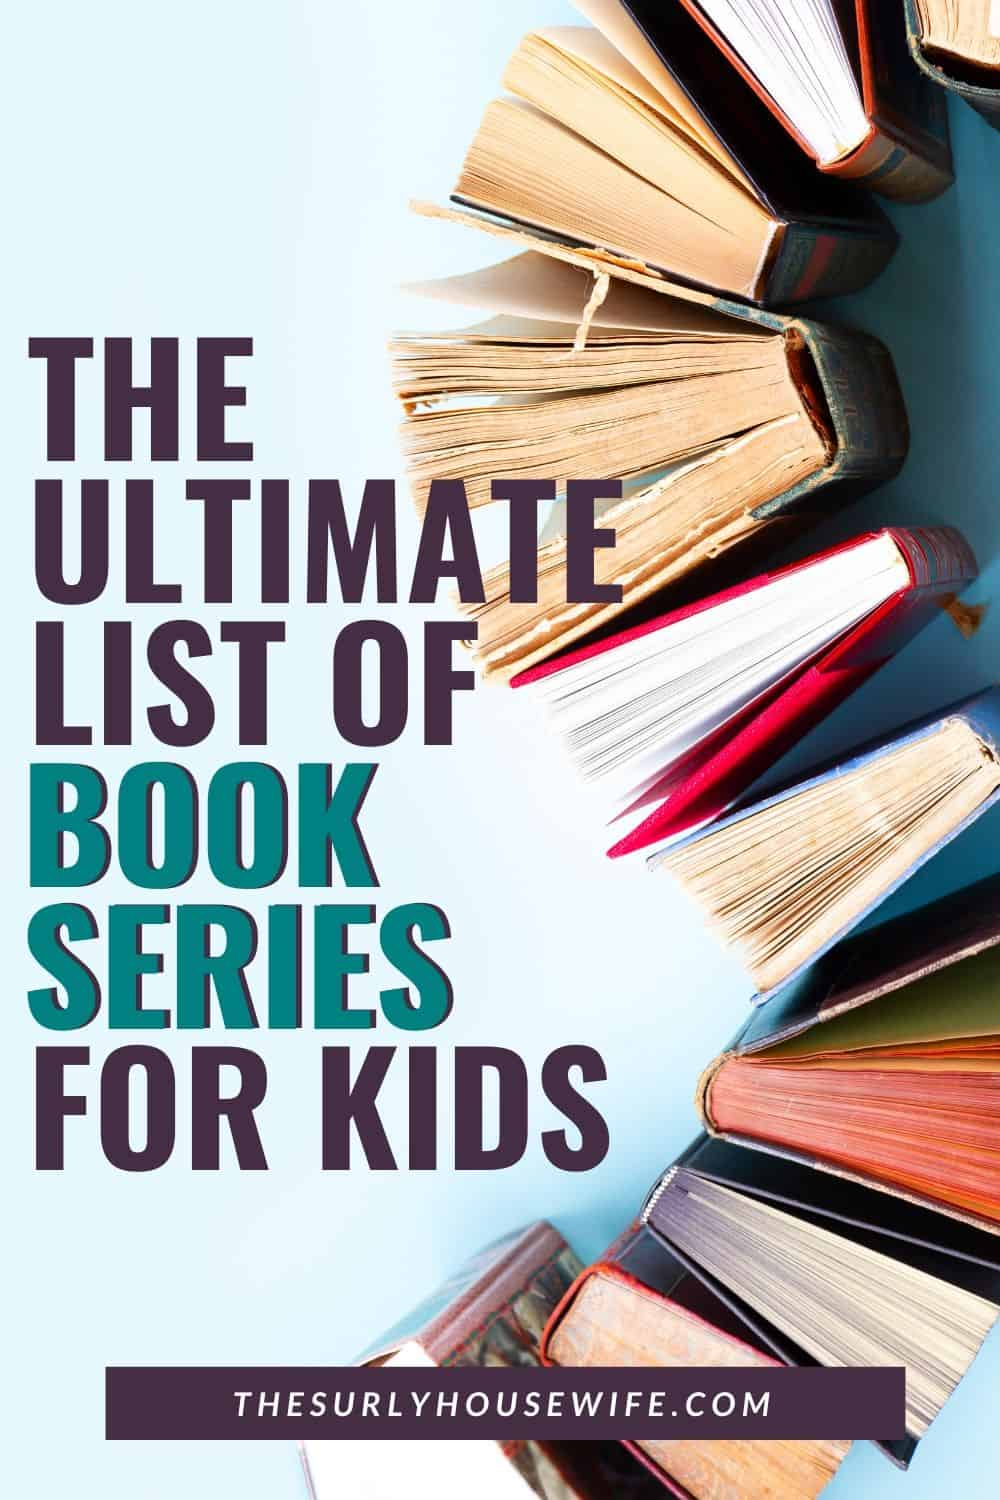 Does your child love binge reading? Do they LOVE reading series of books? Then don't miss this post for the ultimate list of chapter book series for kids! Perfect for read alouds or independent reading. Book series for kids from ages 8-12 as well as young adult book series. Check it out!